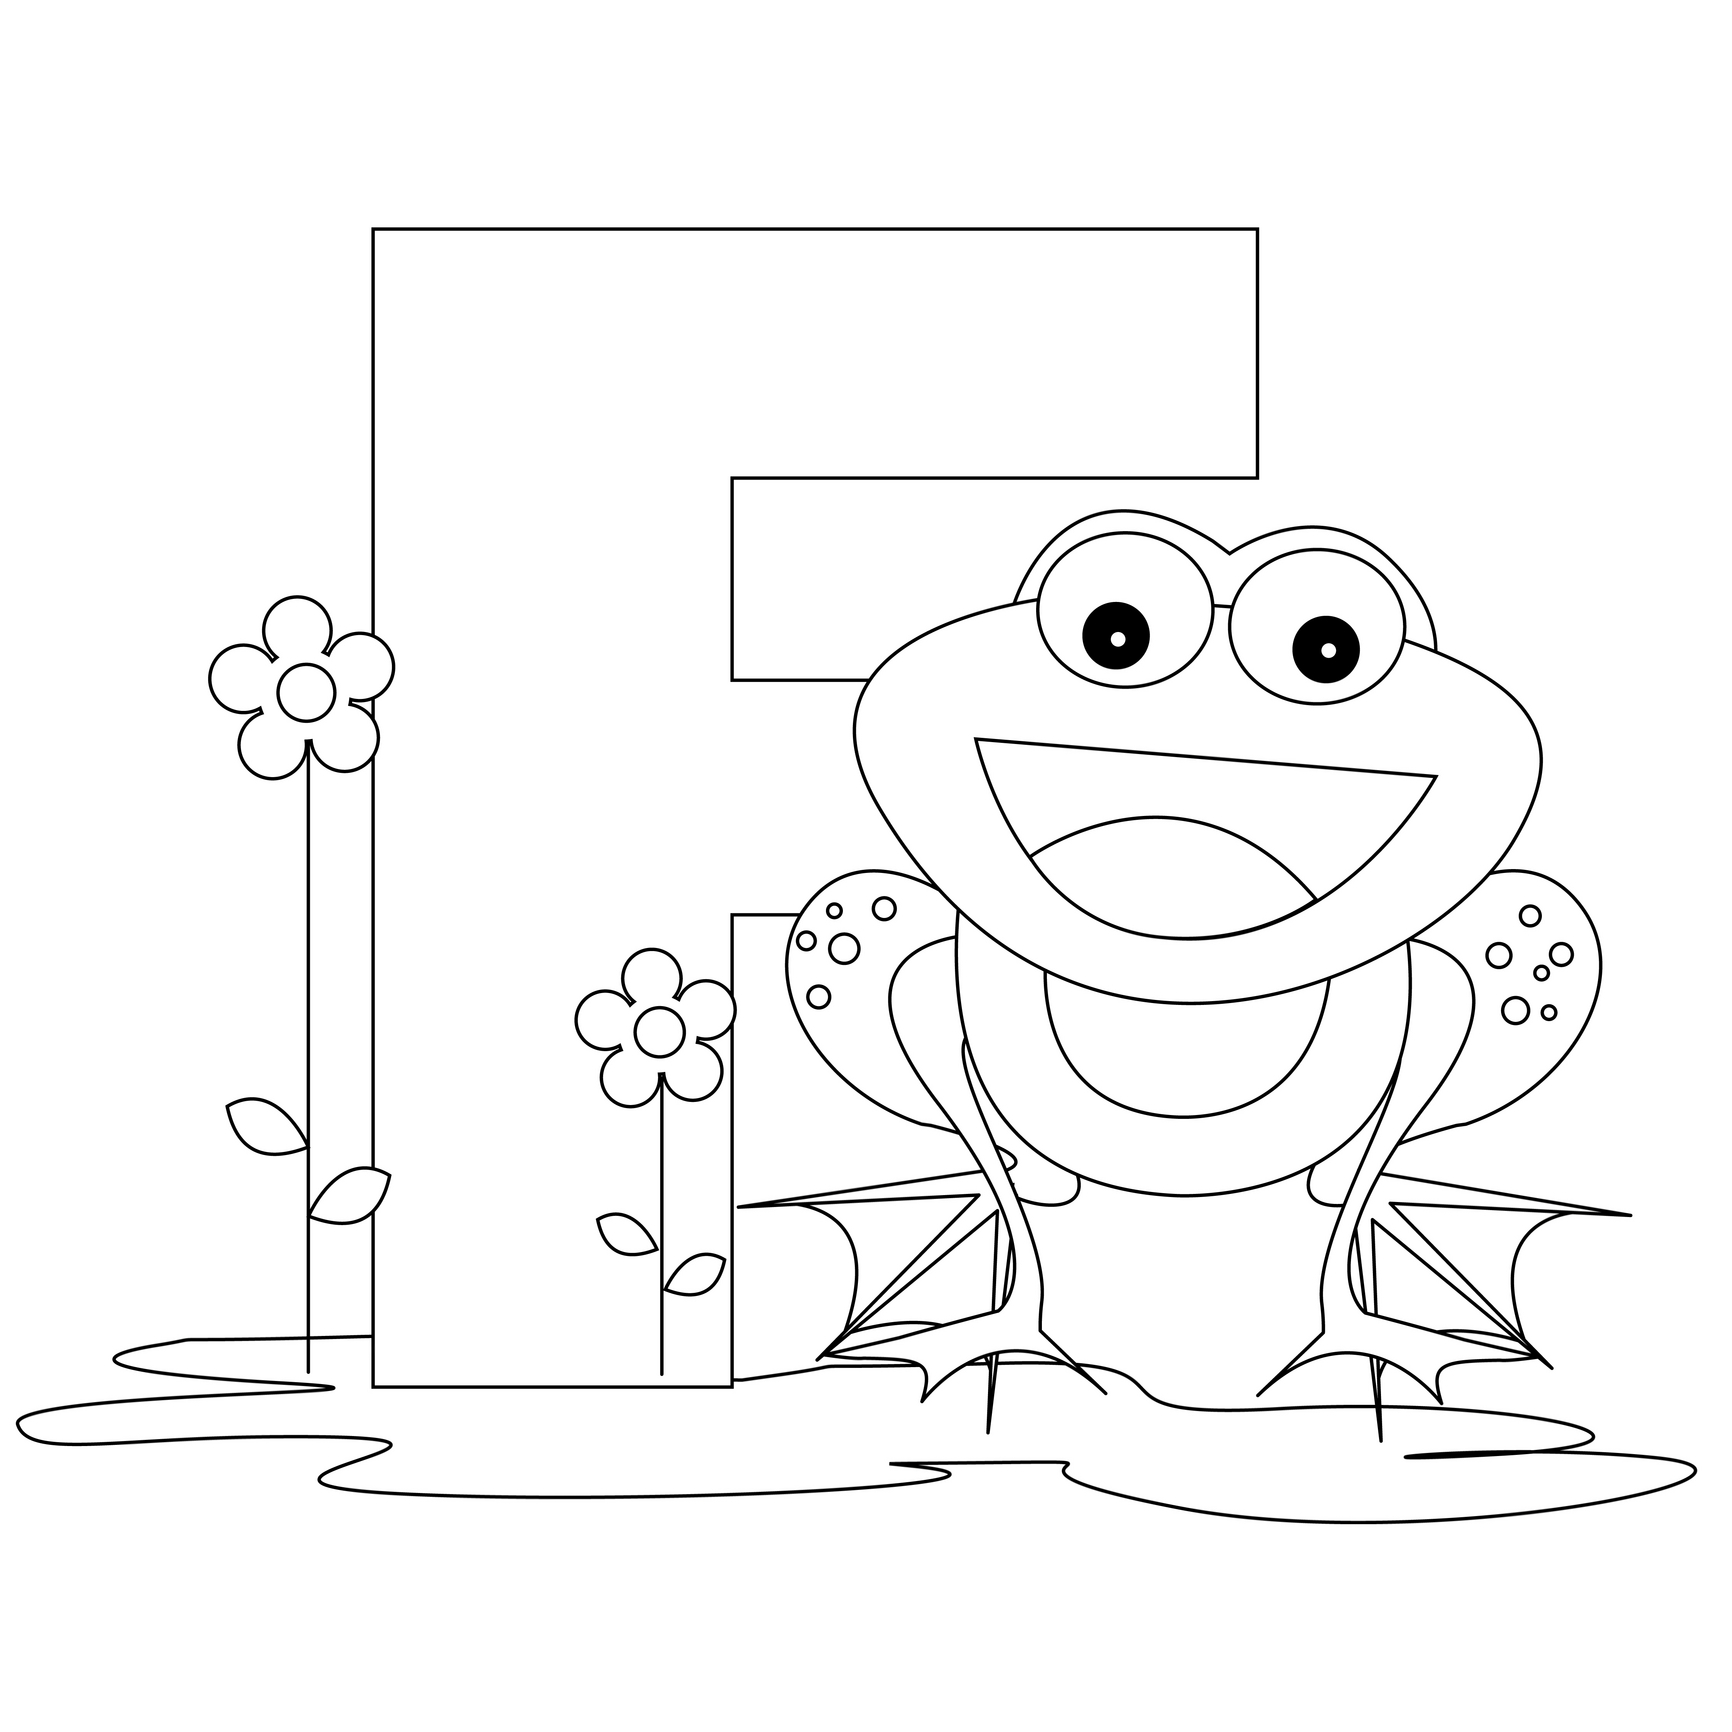 Free coloring page letter n - Fr Free Coloring Pages Letter F